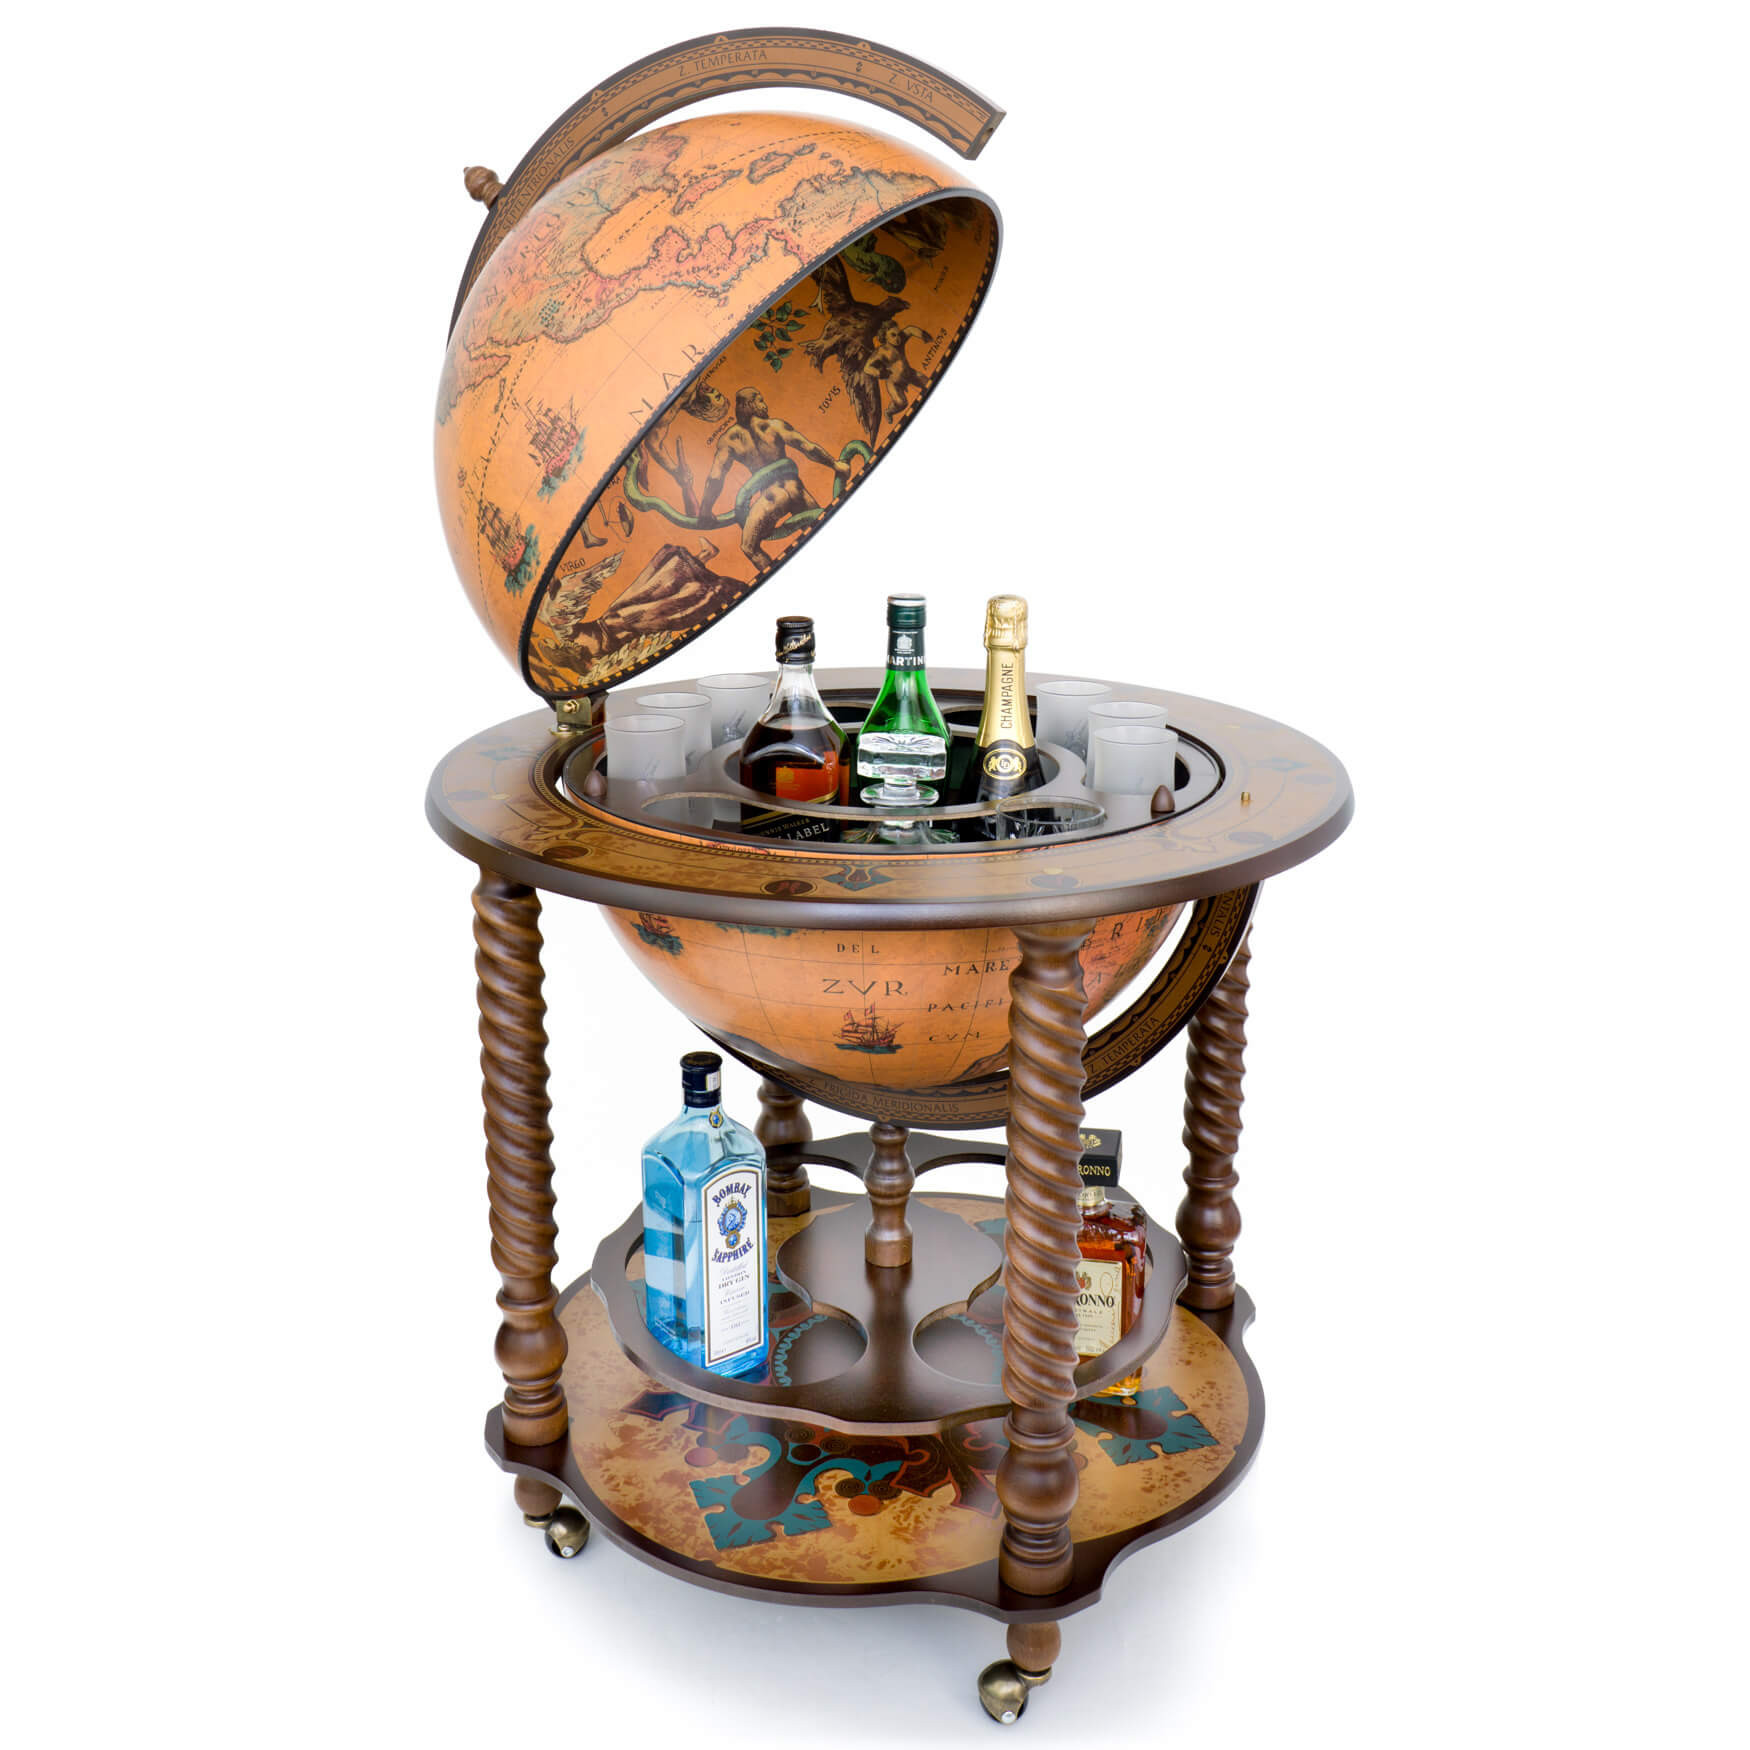 Raleigh Globe Bar Made in Italy *Ex Display*